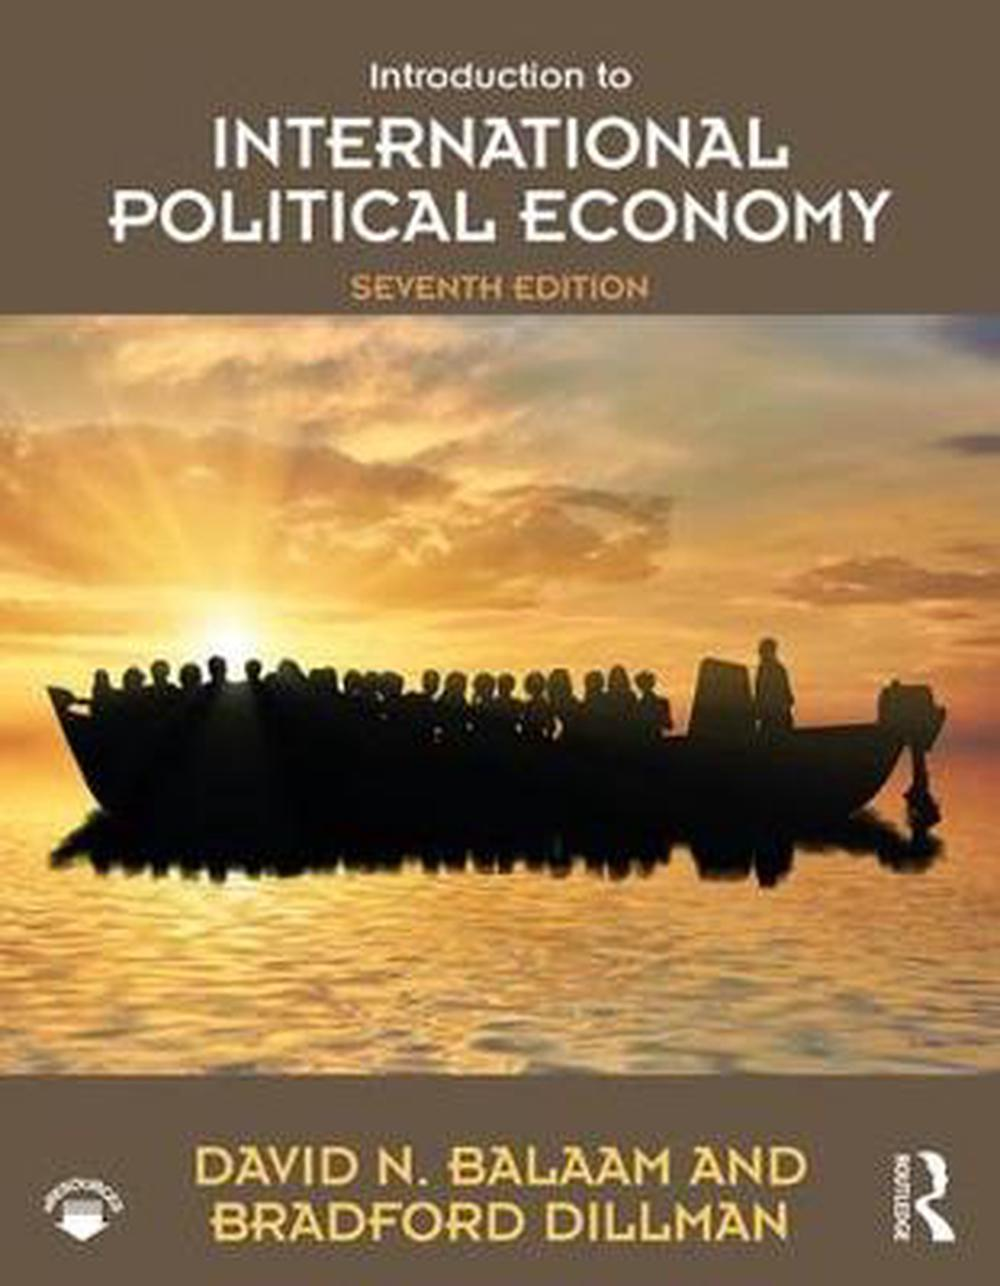 Introduction to International Political Economy, 7th Edition